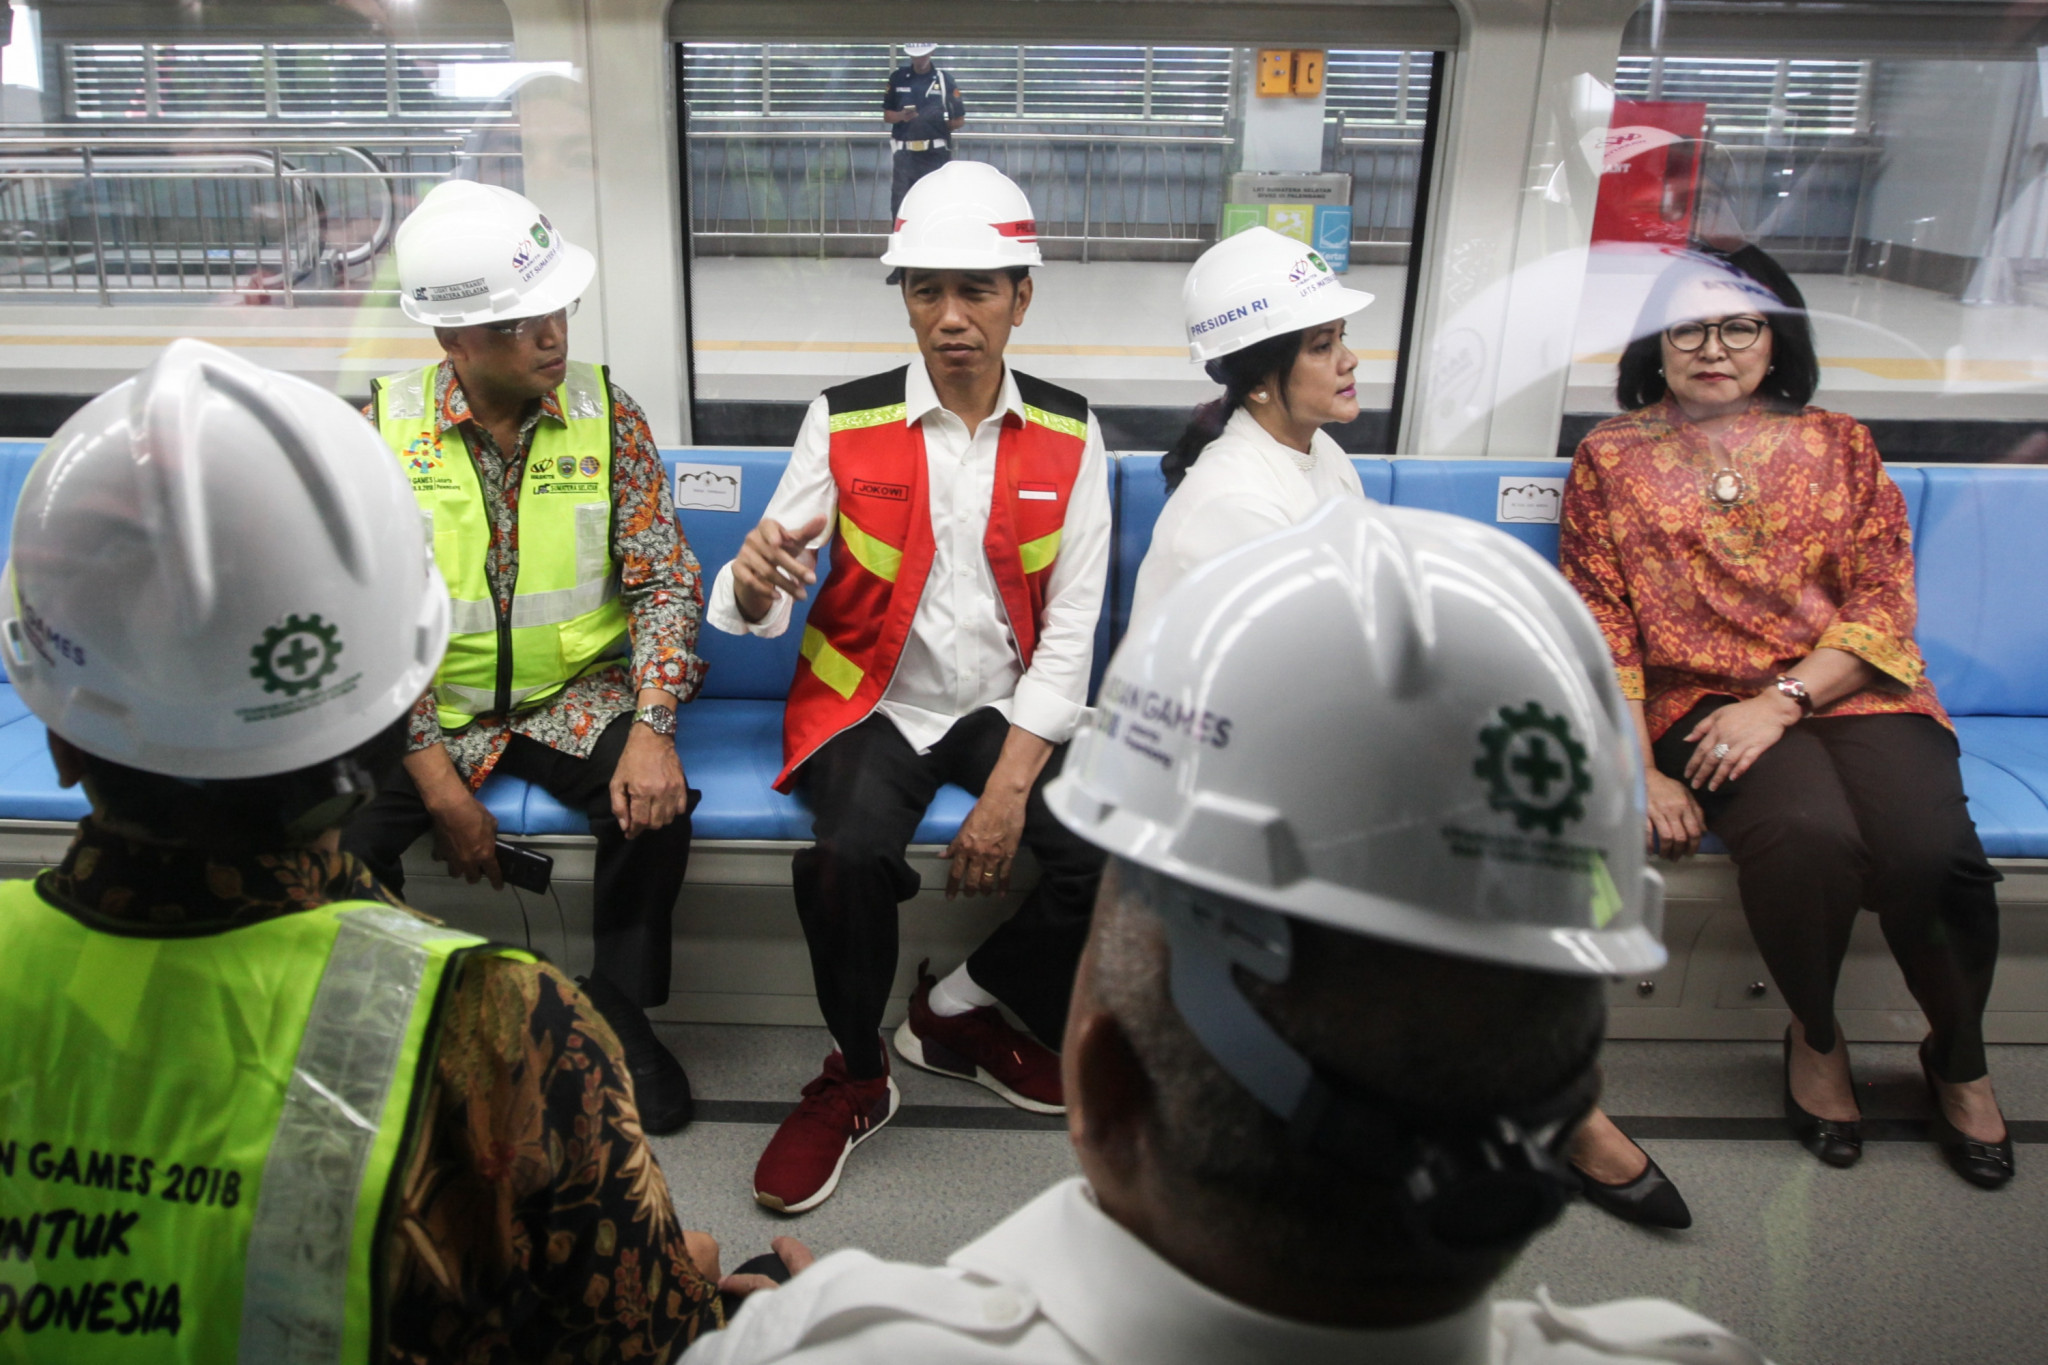 Indonesia's President Joko Widodo, second from left, sits inside a LRT rail car at Jakabaring station in Palembang ©Getty Images